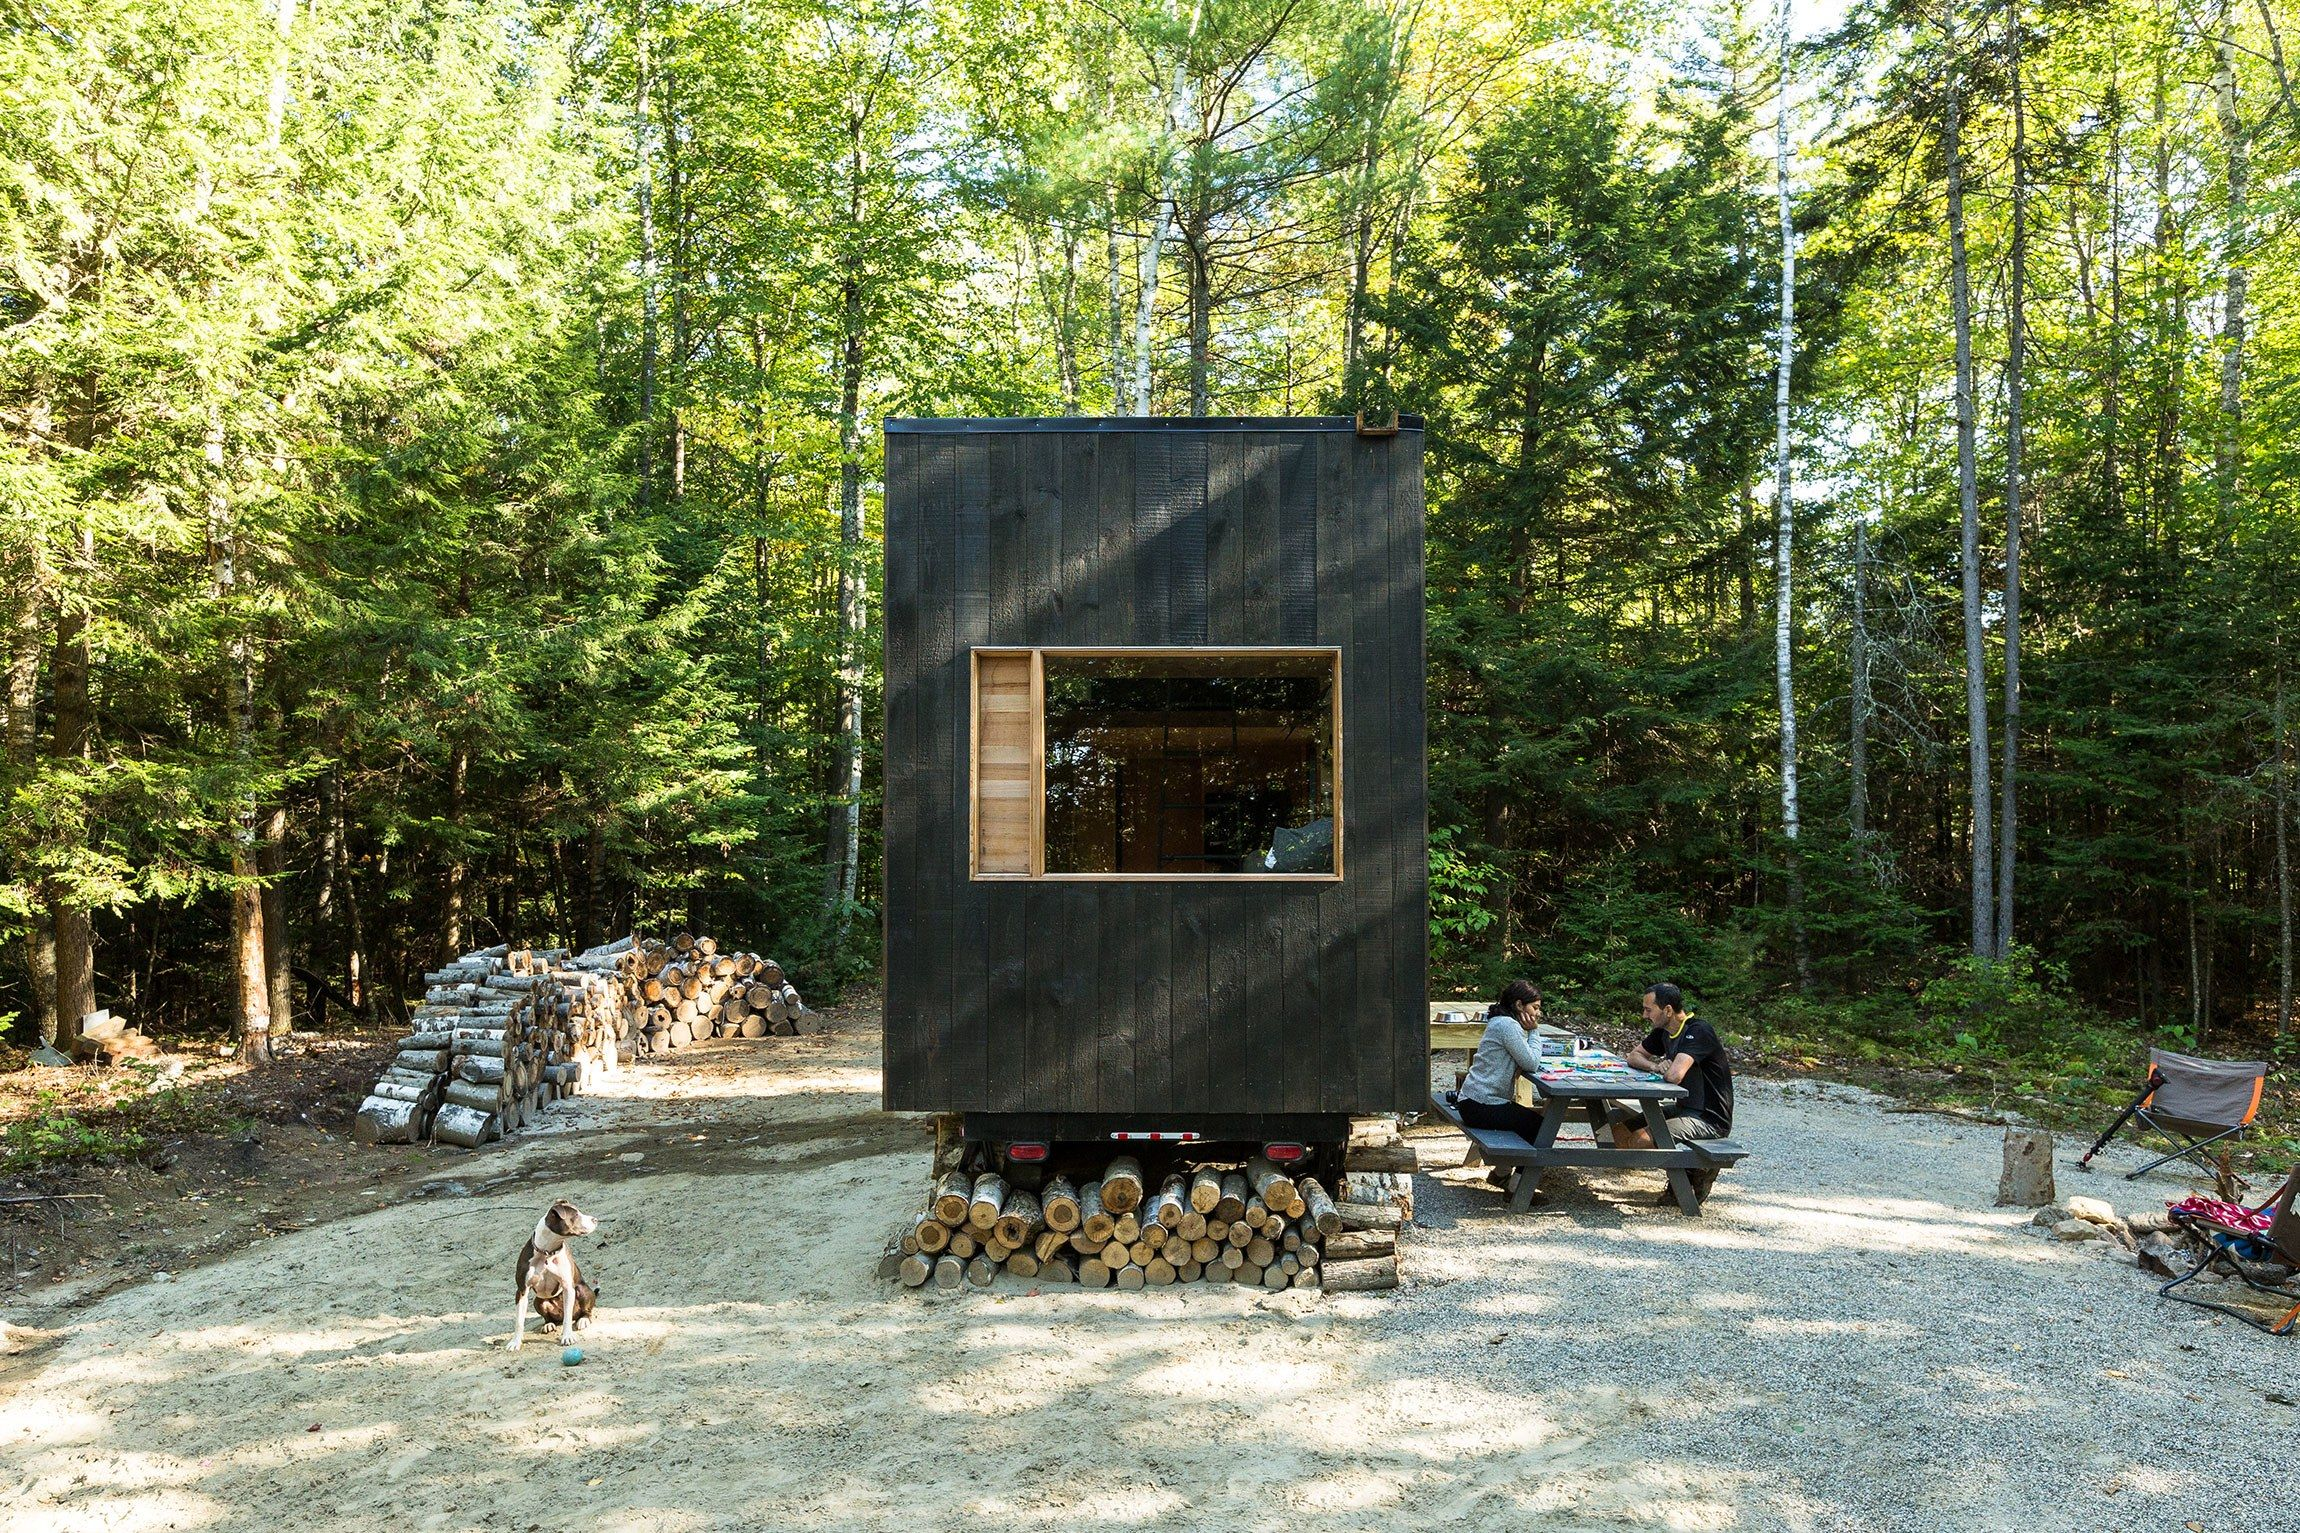 10 Tiny Homes to Rent for Your Next Vacation | Pinterest